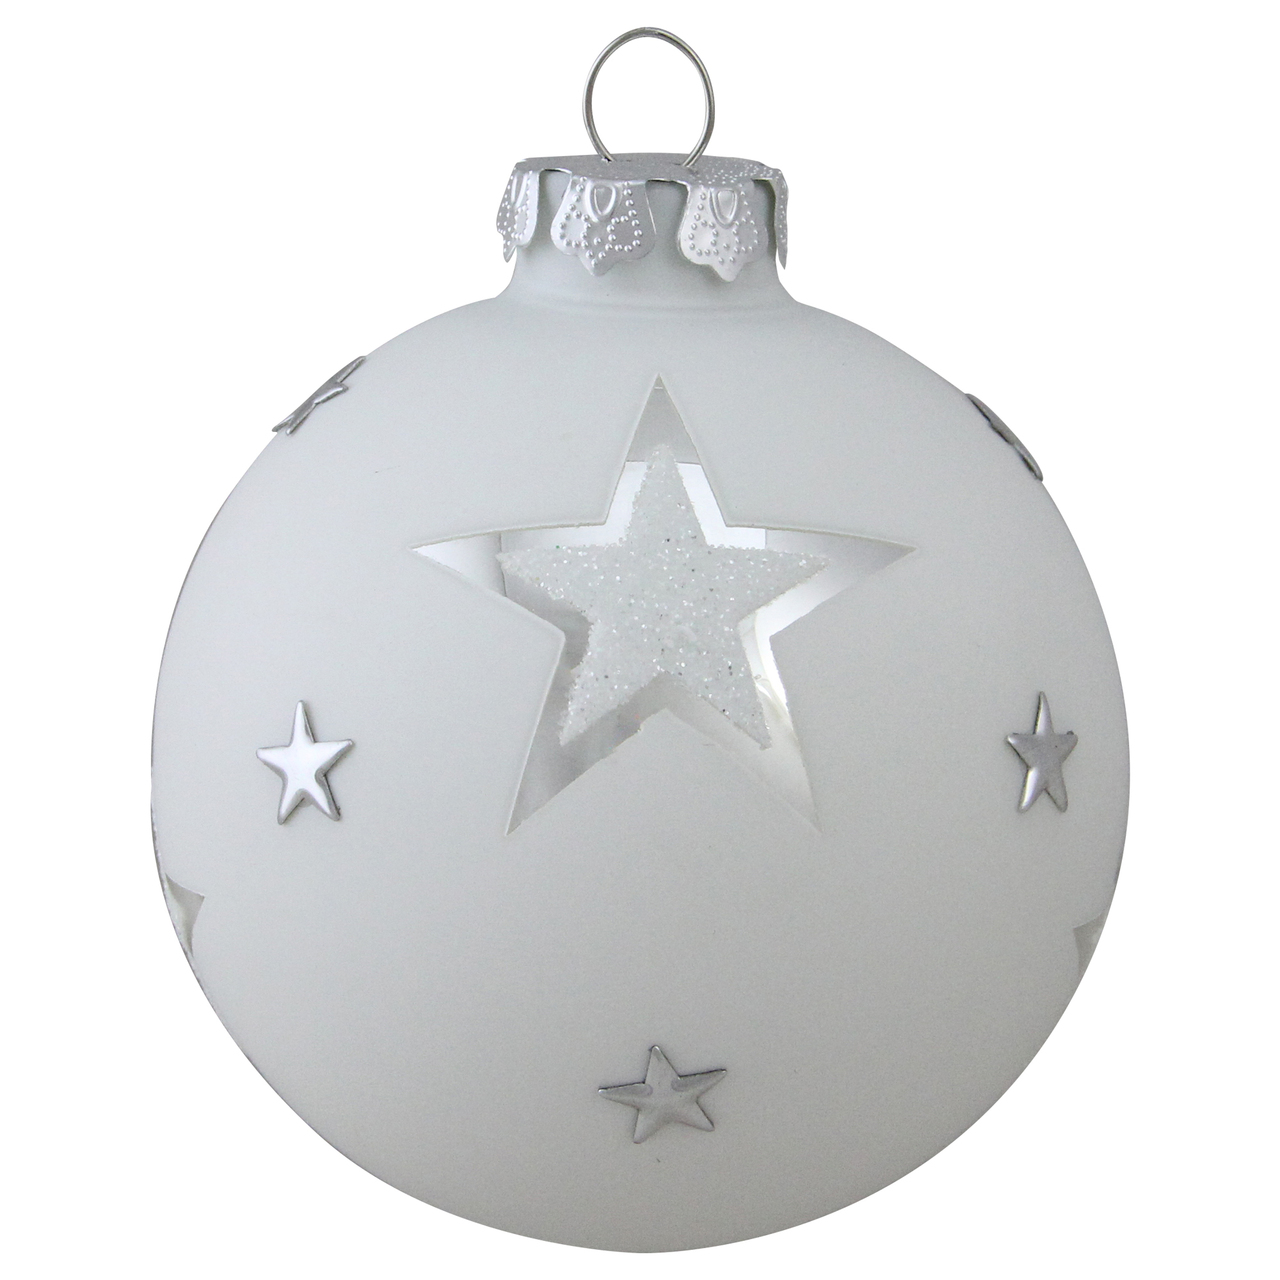 325 Winters Beauty White and Silver Star Glass Ball Christmas